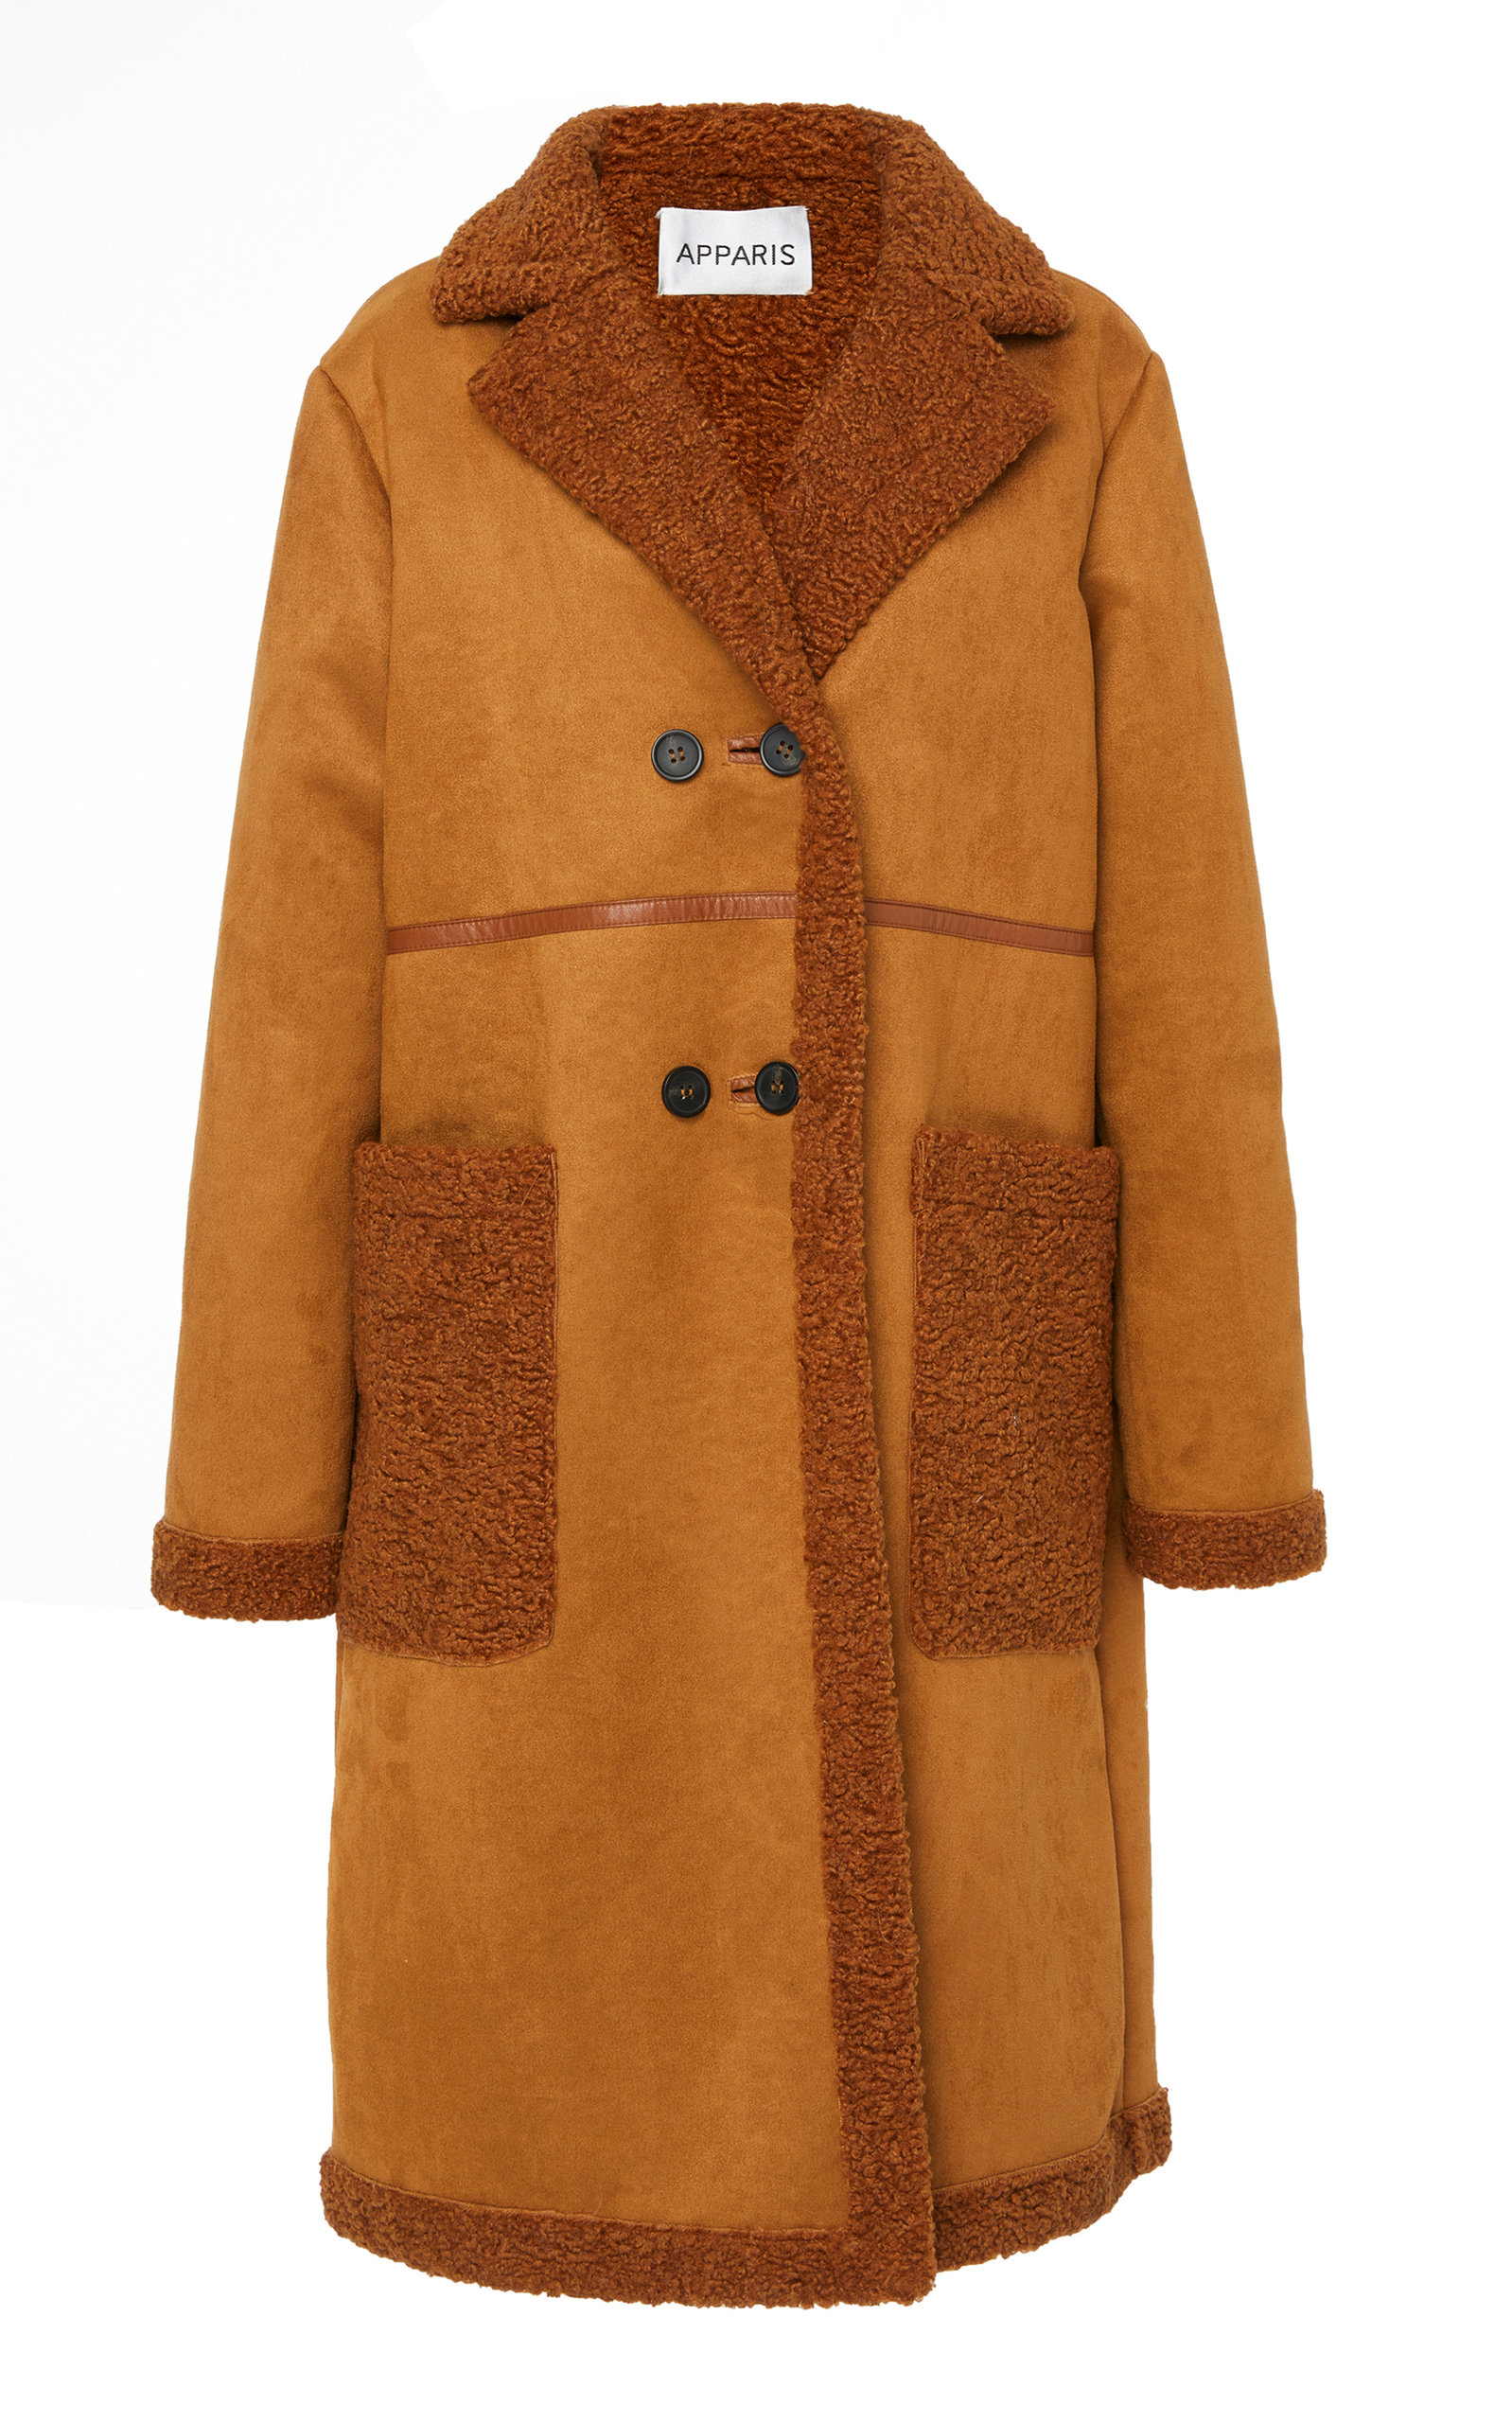 APPARIS Clothilde Faux Shearling Car Coat in Chestnut